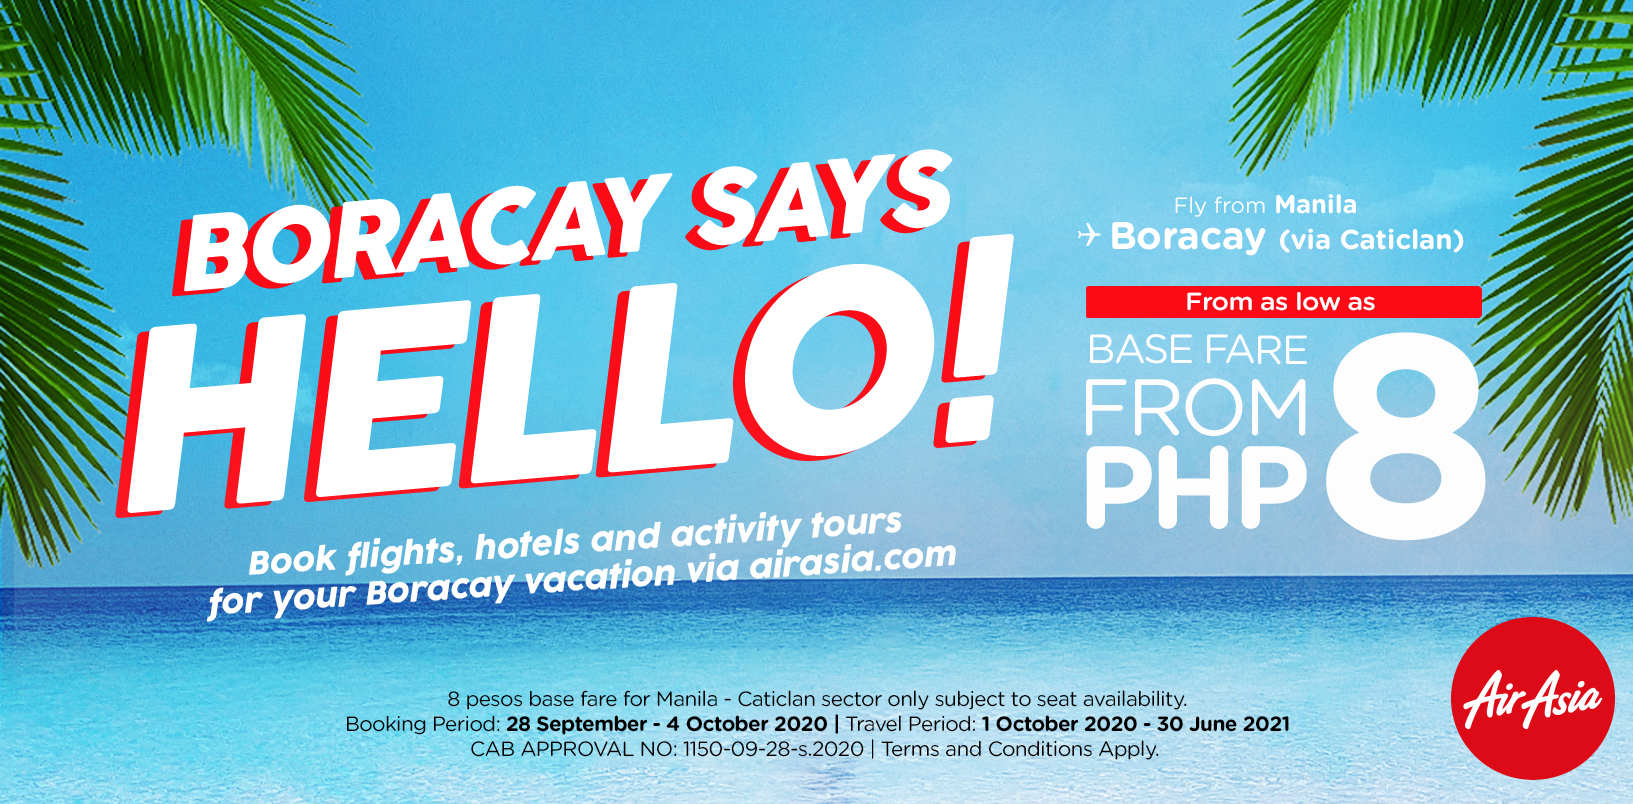 AirAsia supports the reopening of Boracay, offers unbeatable deals for as low as P8